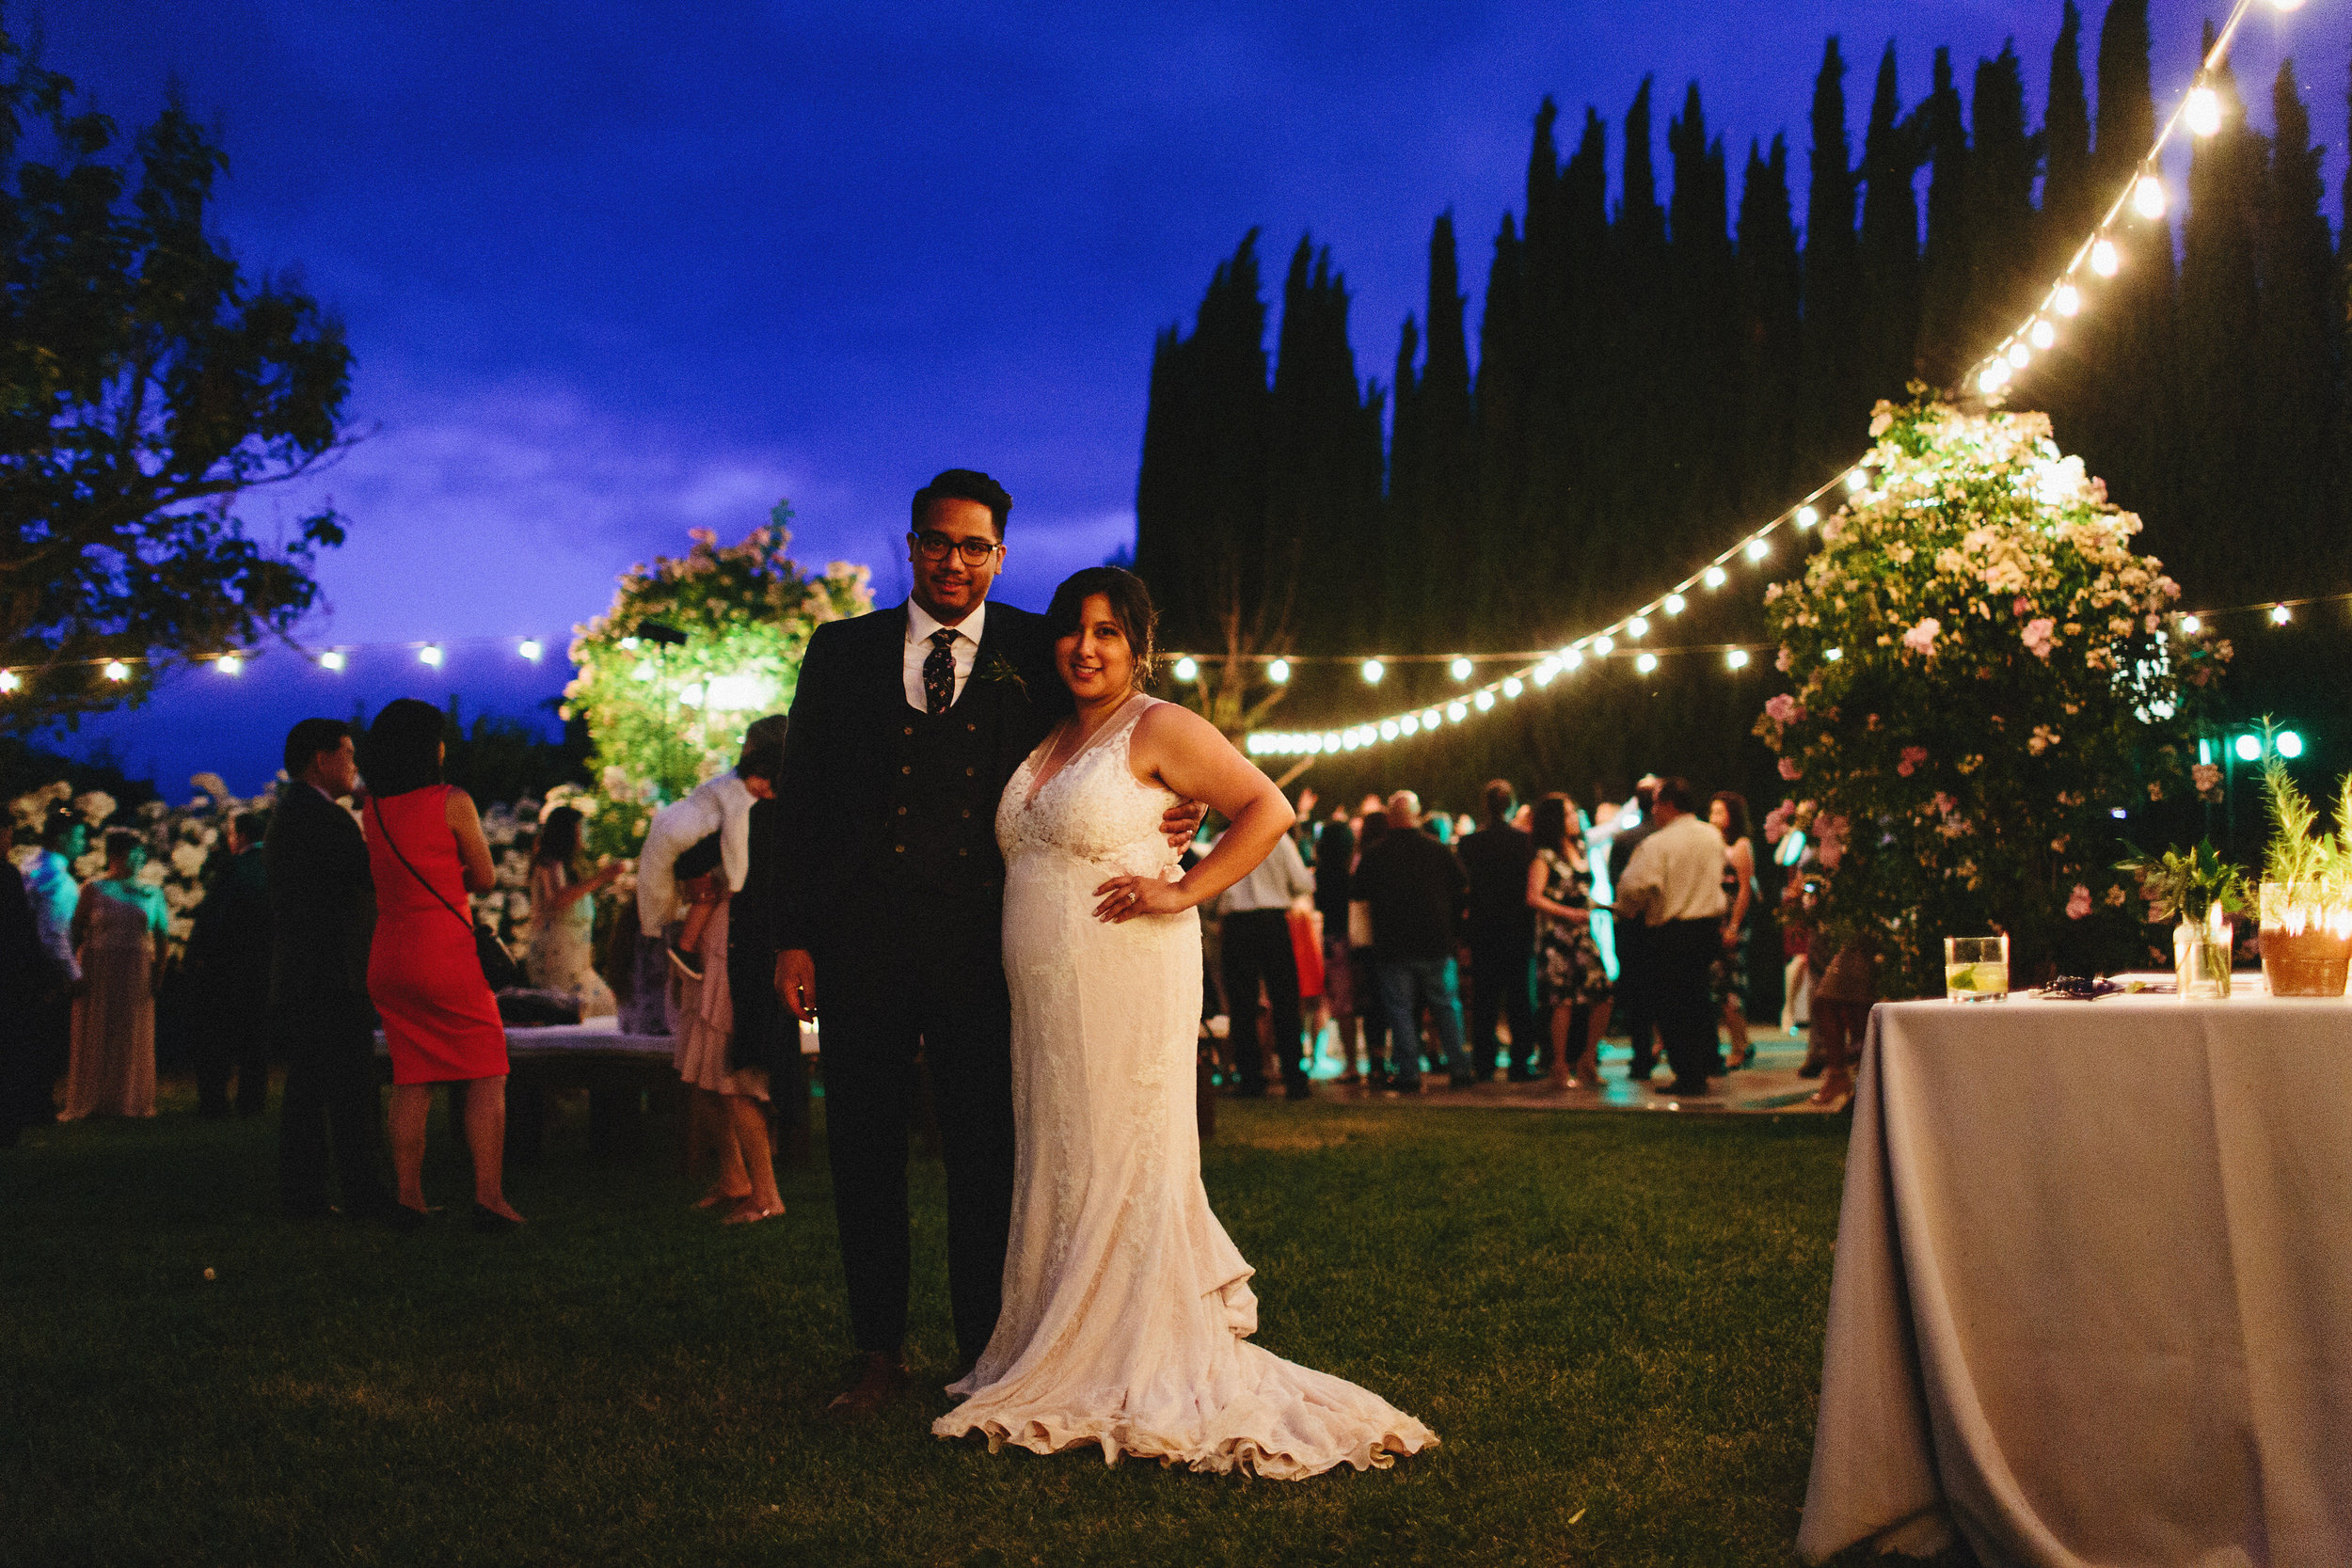 Campovida-wedding-67.jpg